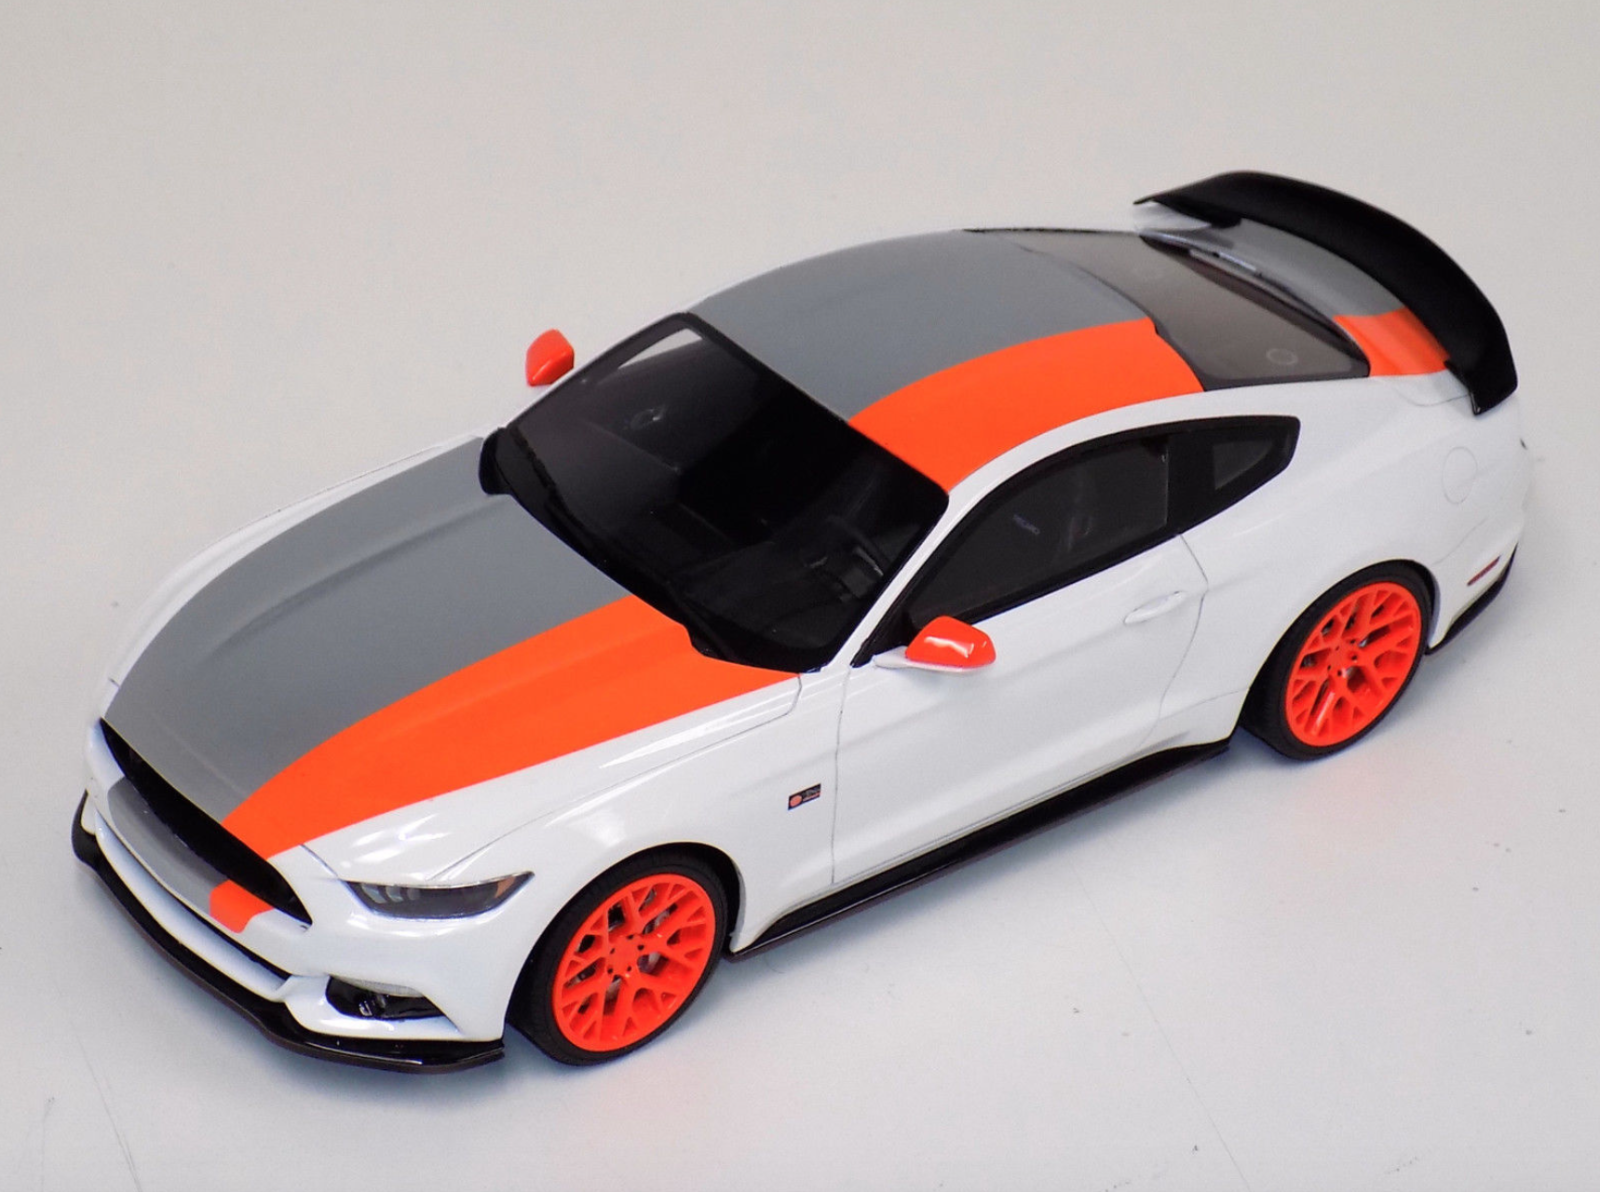 1/18 GT Spirit Ford Mustang by Bojix Design in White GT123